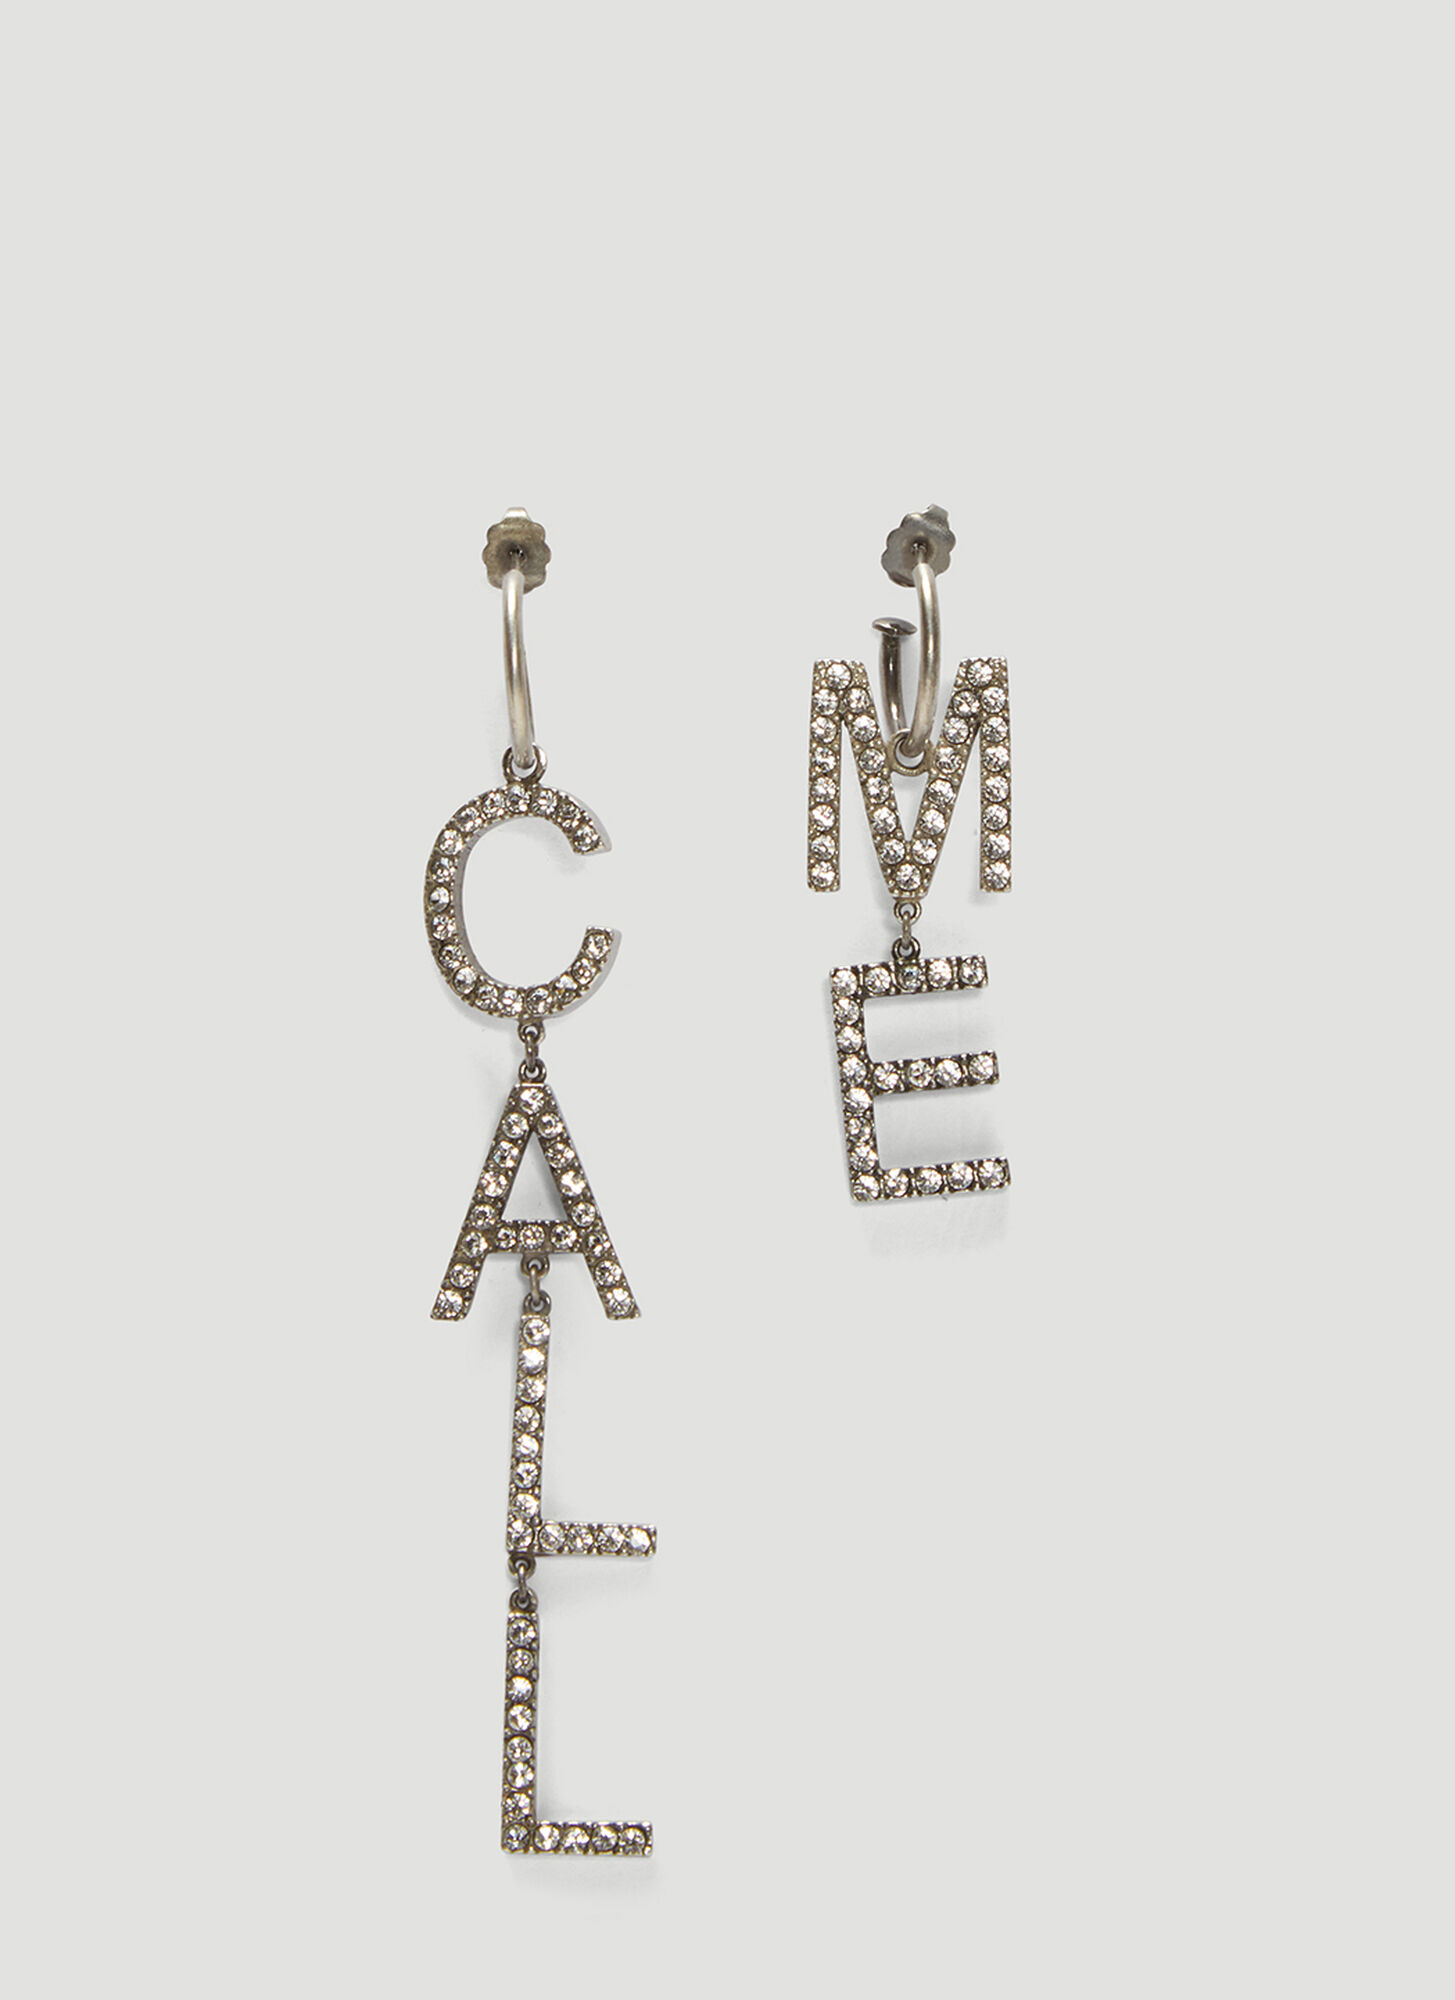 Saint Laurent Call Me Earrings in Silver